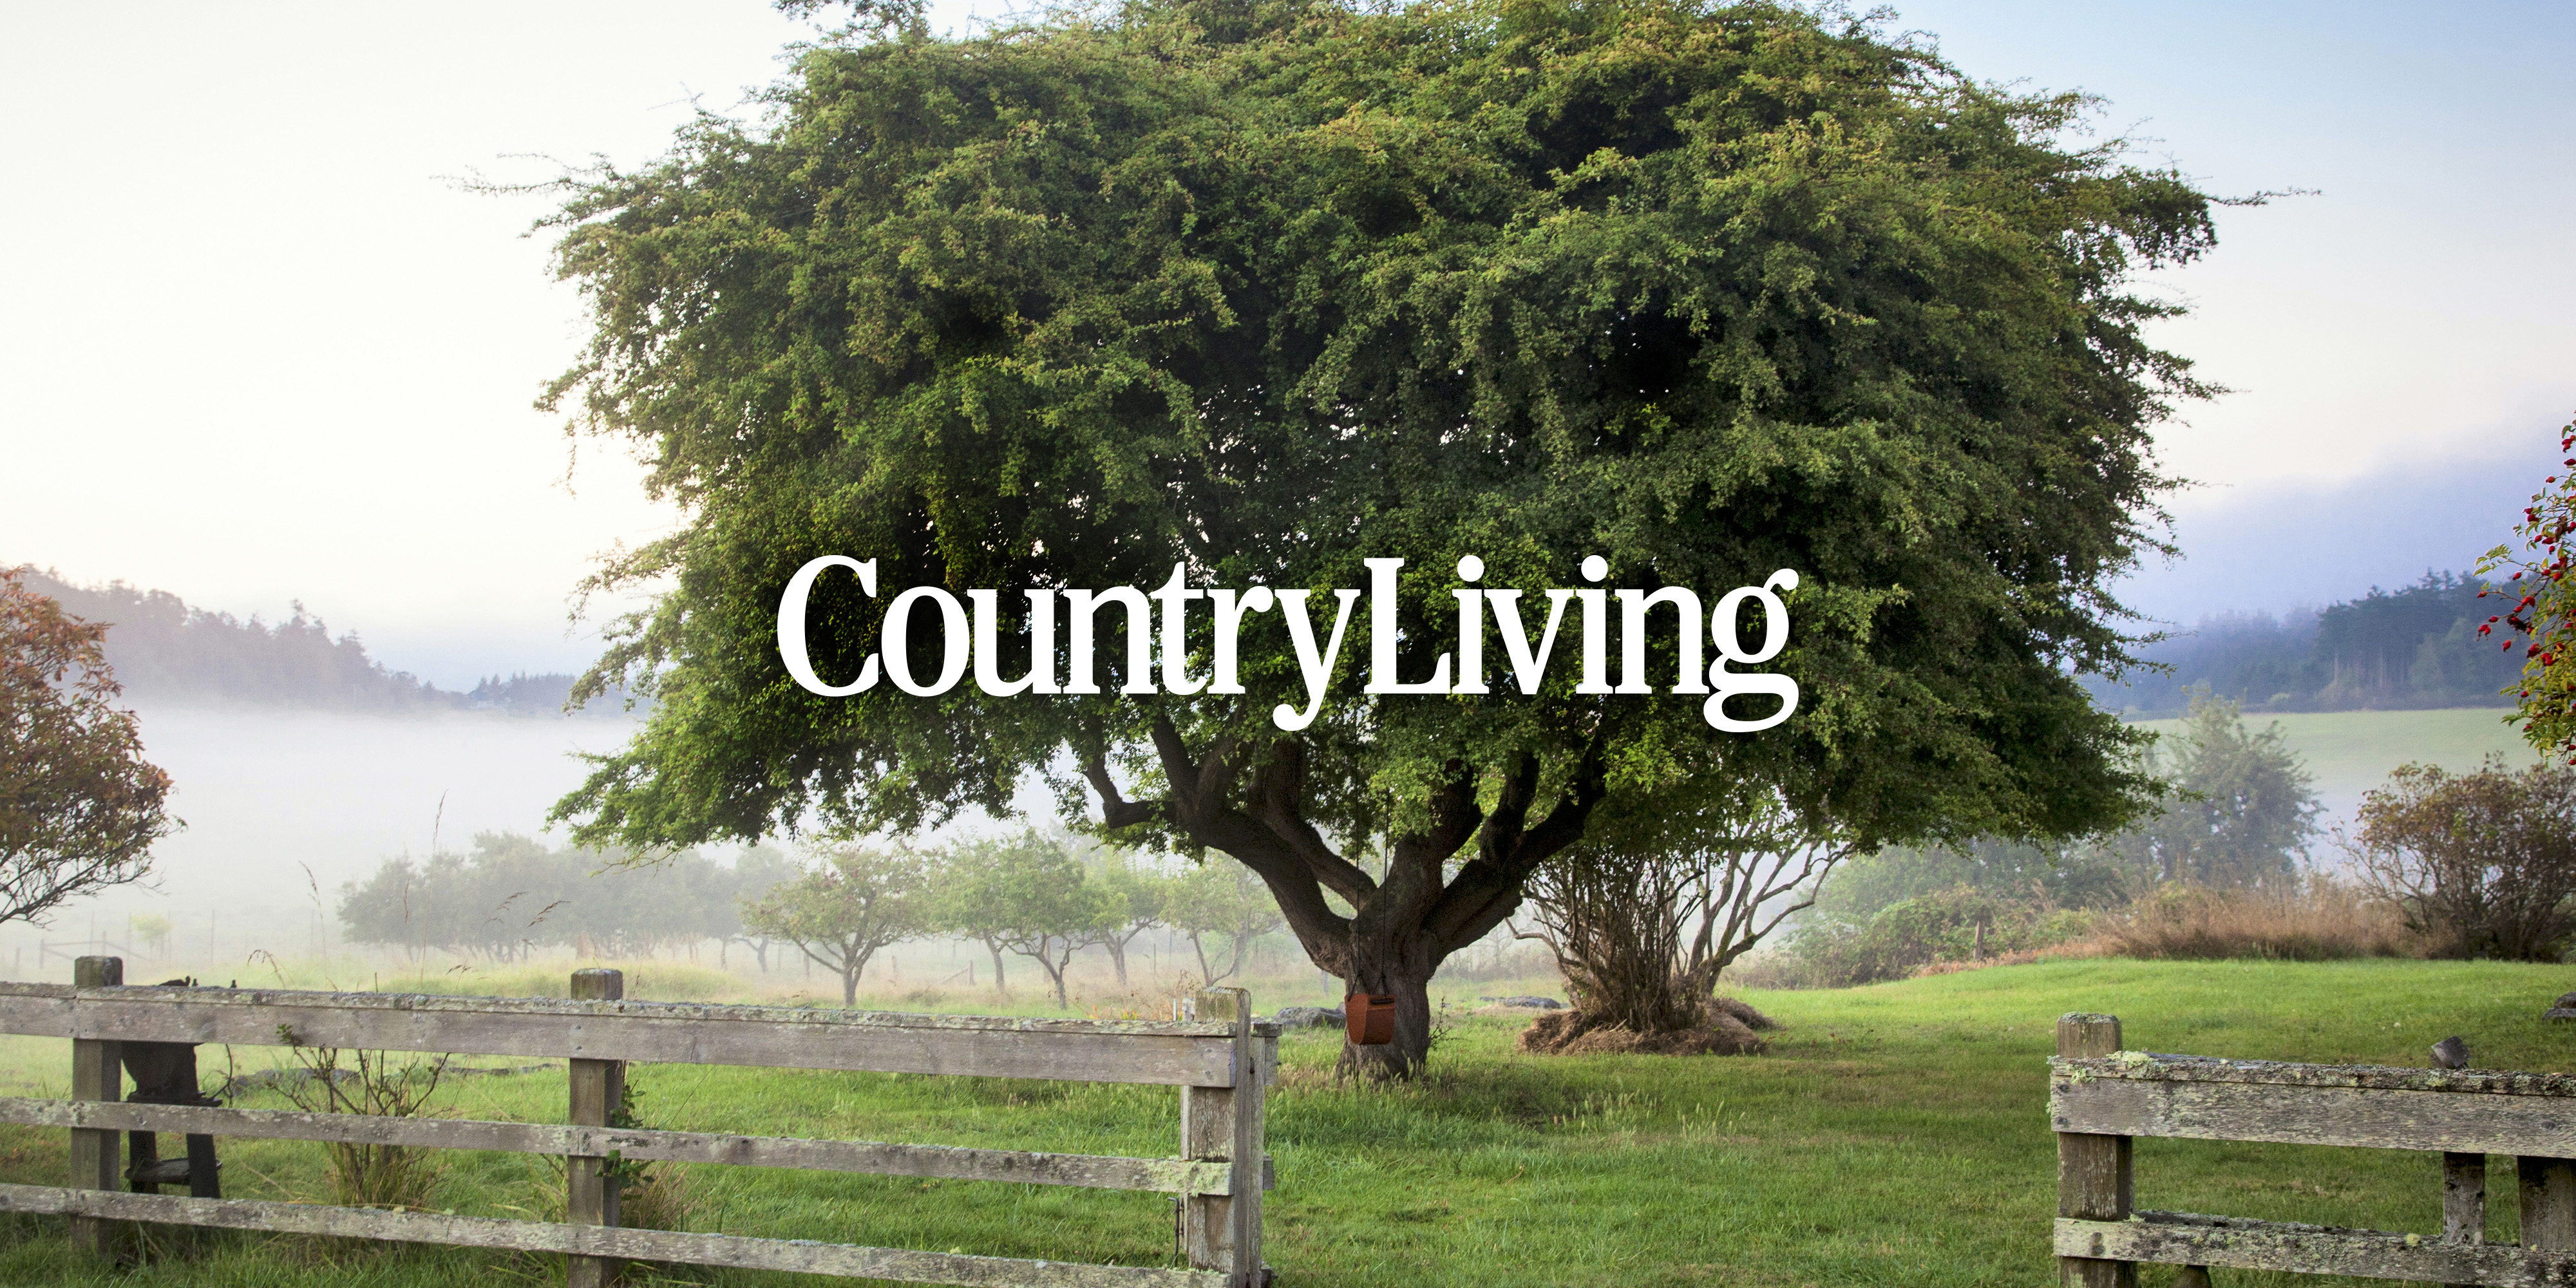 Country Living Customer Service : Contact Country Living - Contact CountryLiving.com